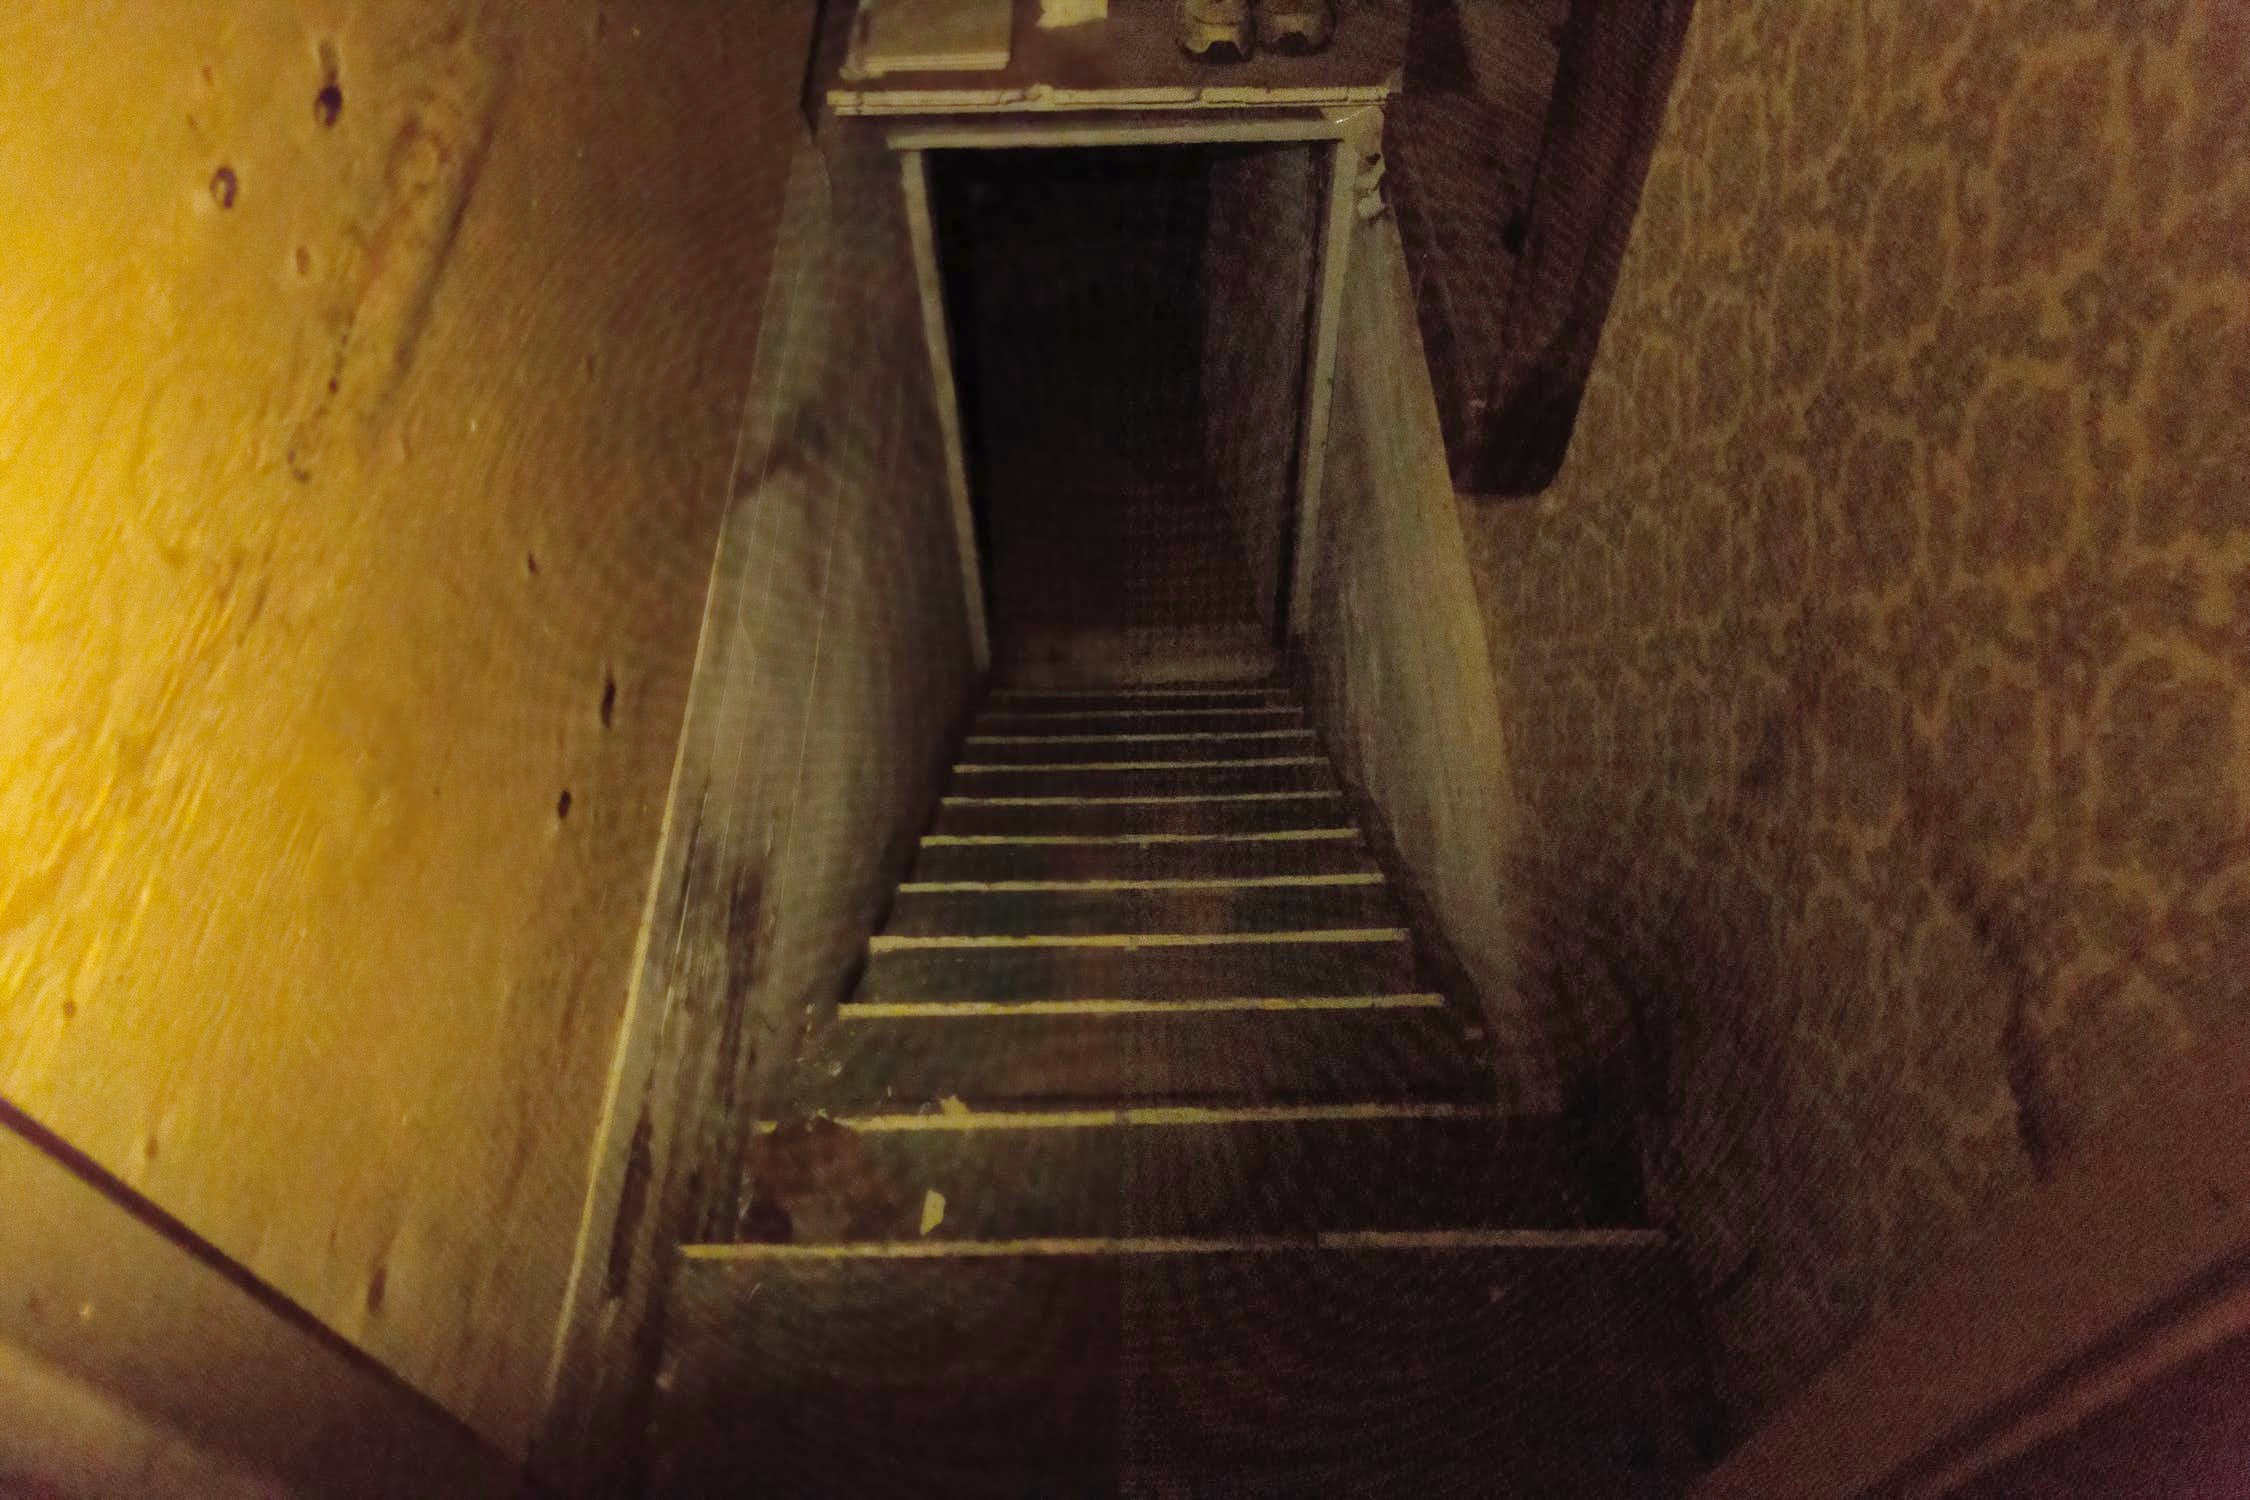 Creepiest Place Facts